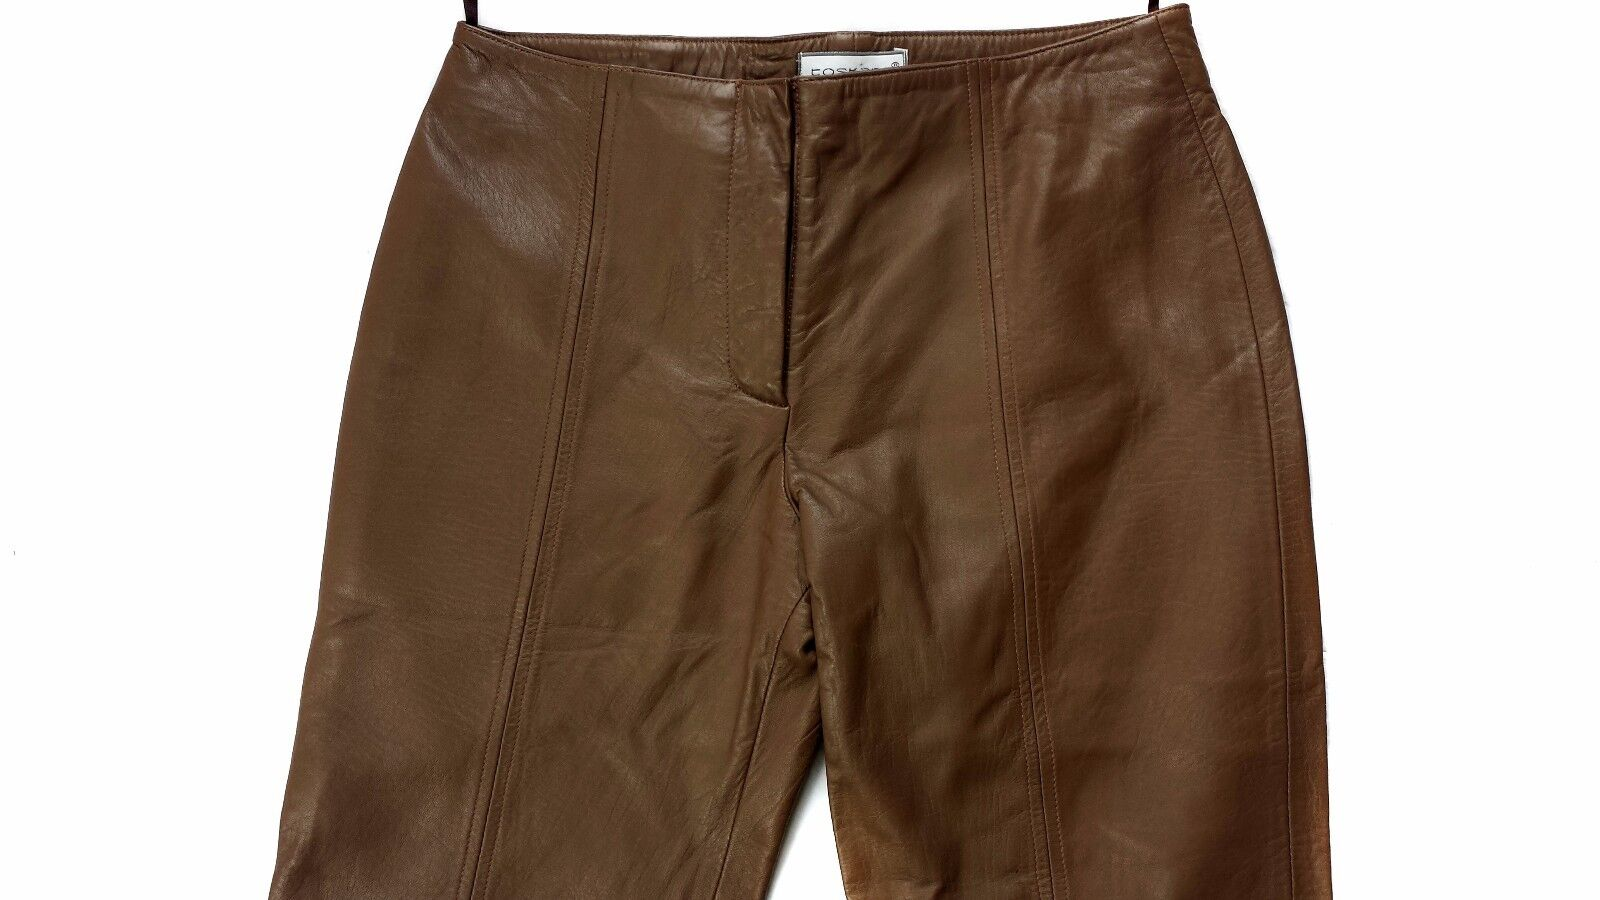 TOSKANA GENUINE LAMB LEATHER BROWN CAPRI PANTS LINED MADE IN TURKEY XL MSRP  199